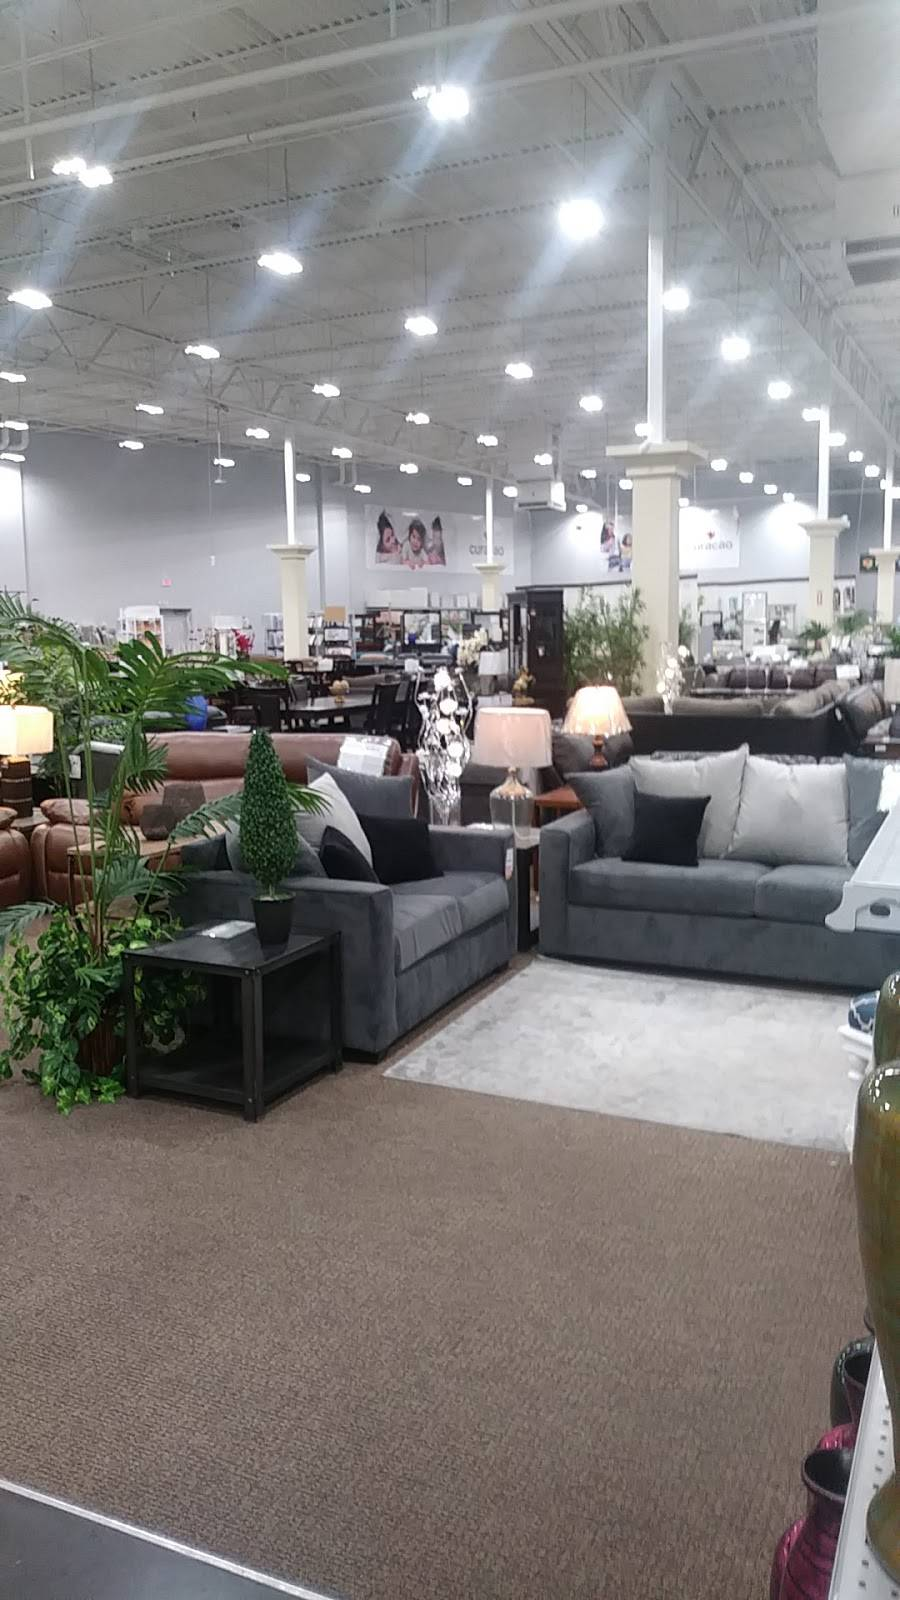 Curacao - department store  | Photo 10 of 10 | Address: 3390 S 6th Ave, Tucson, AZ 85713, USA | Phone: (520) 576-5565